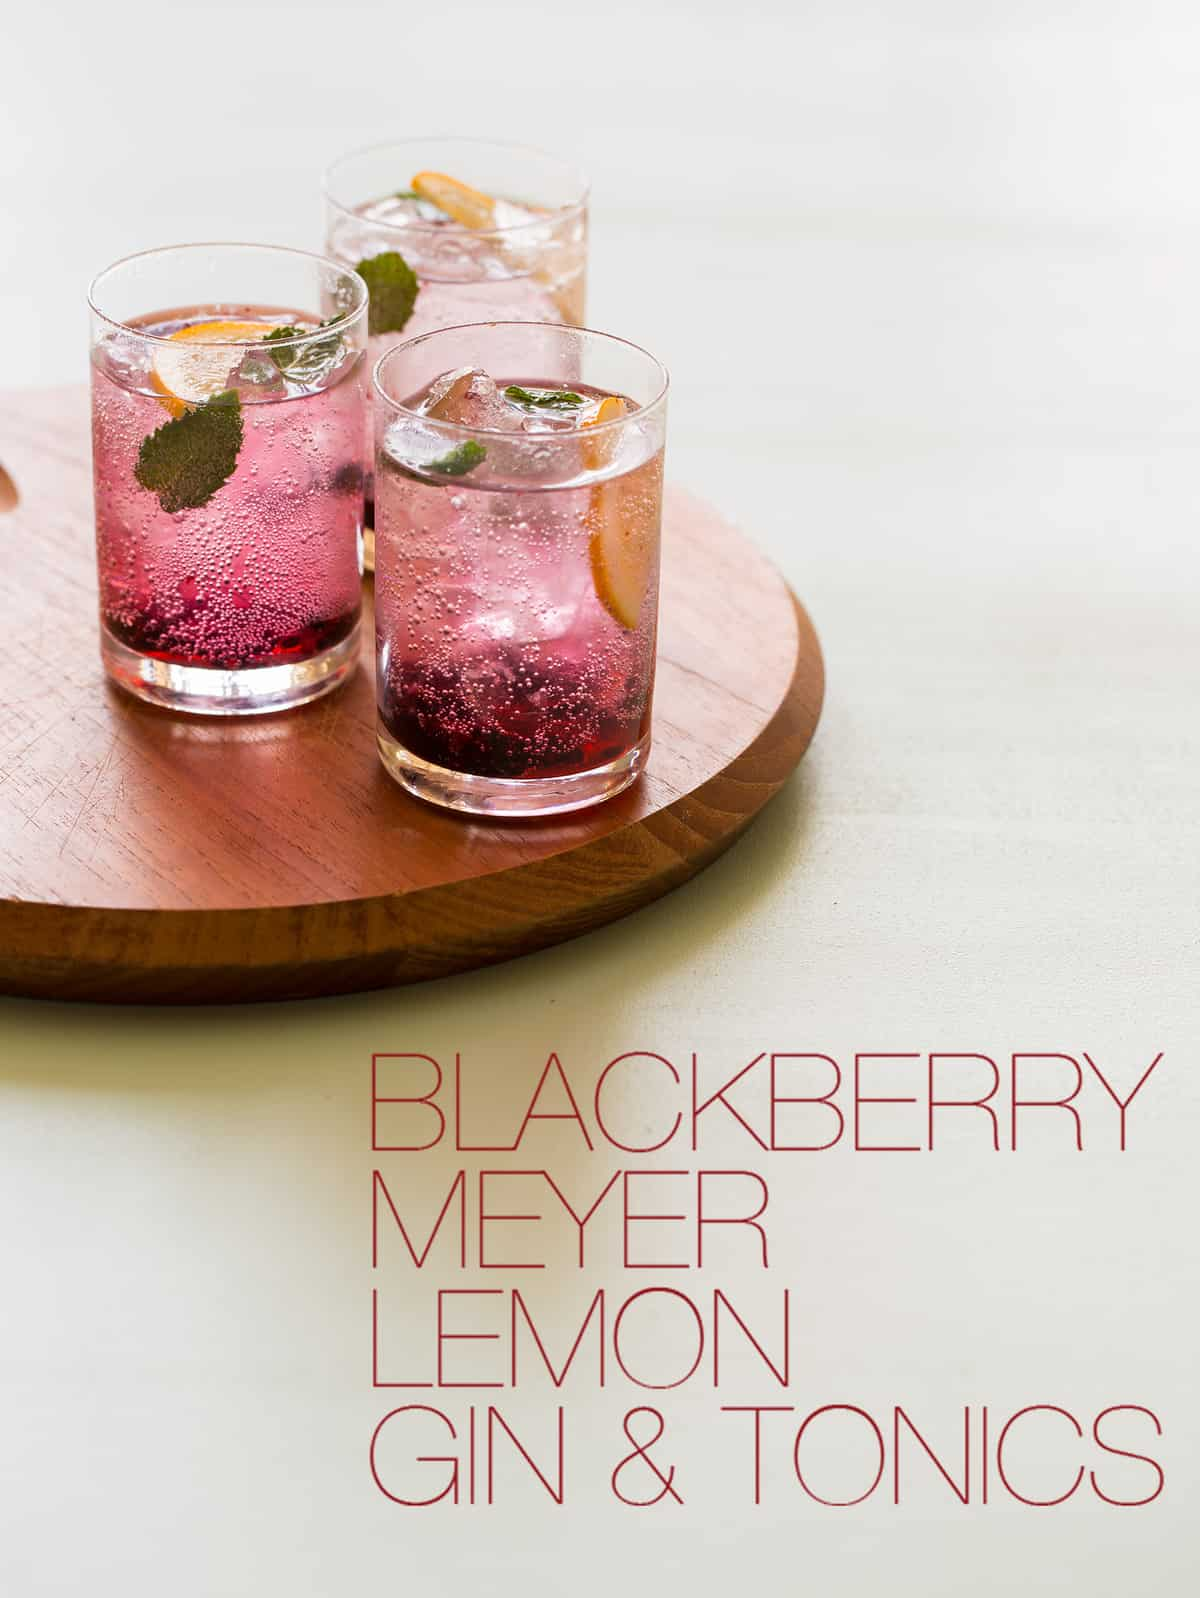 Blackberry & Meyer Lemon Gin & Tonics | Spoon Fork Bacon